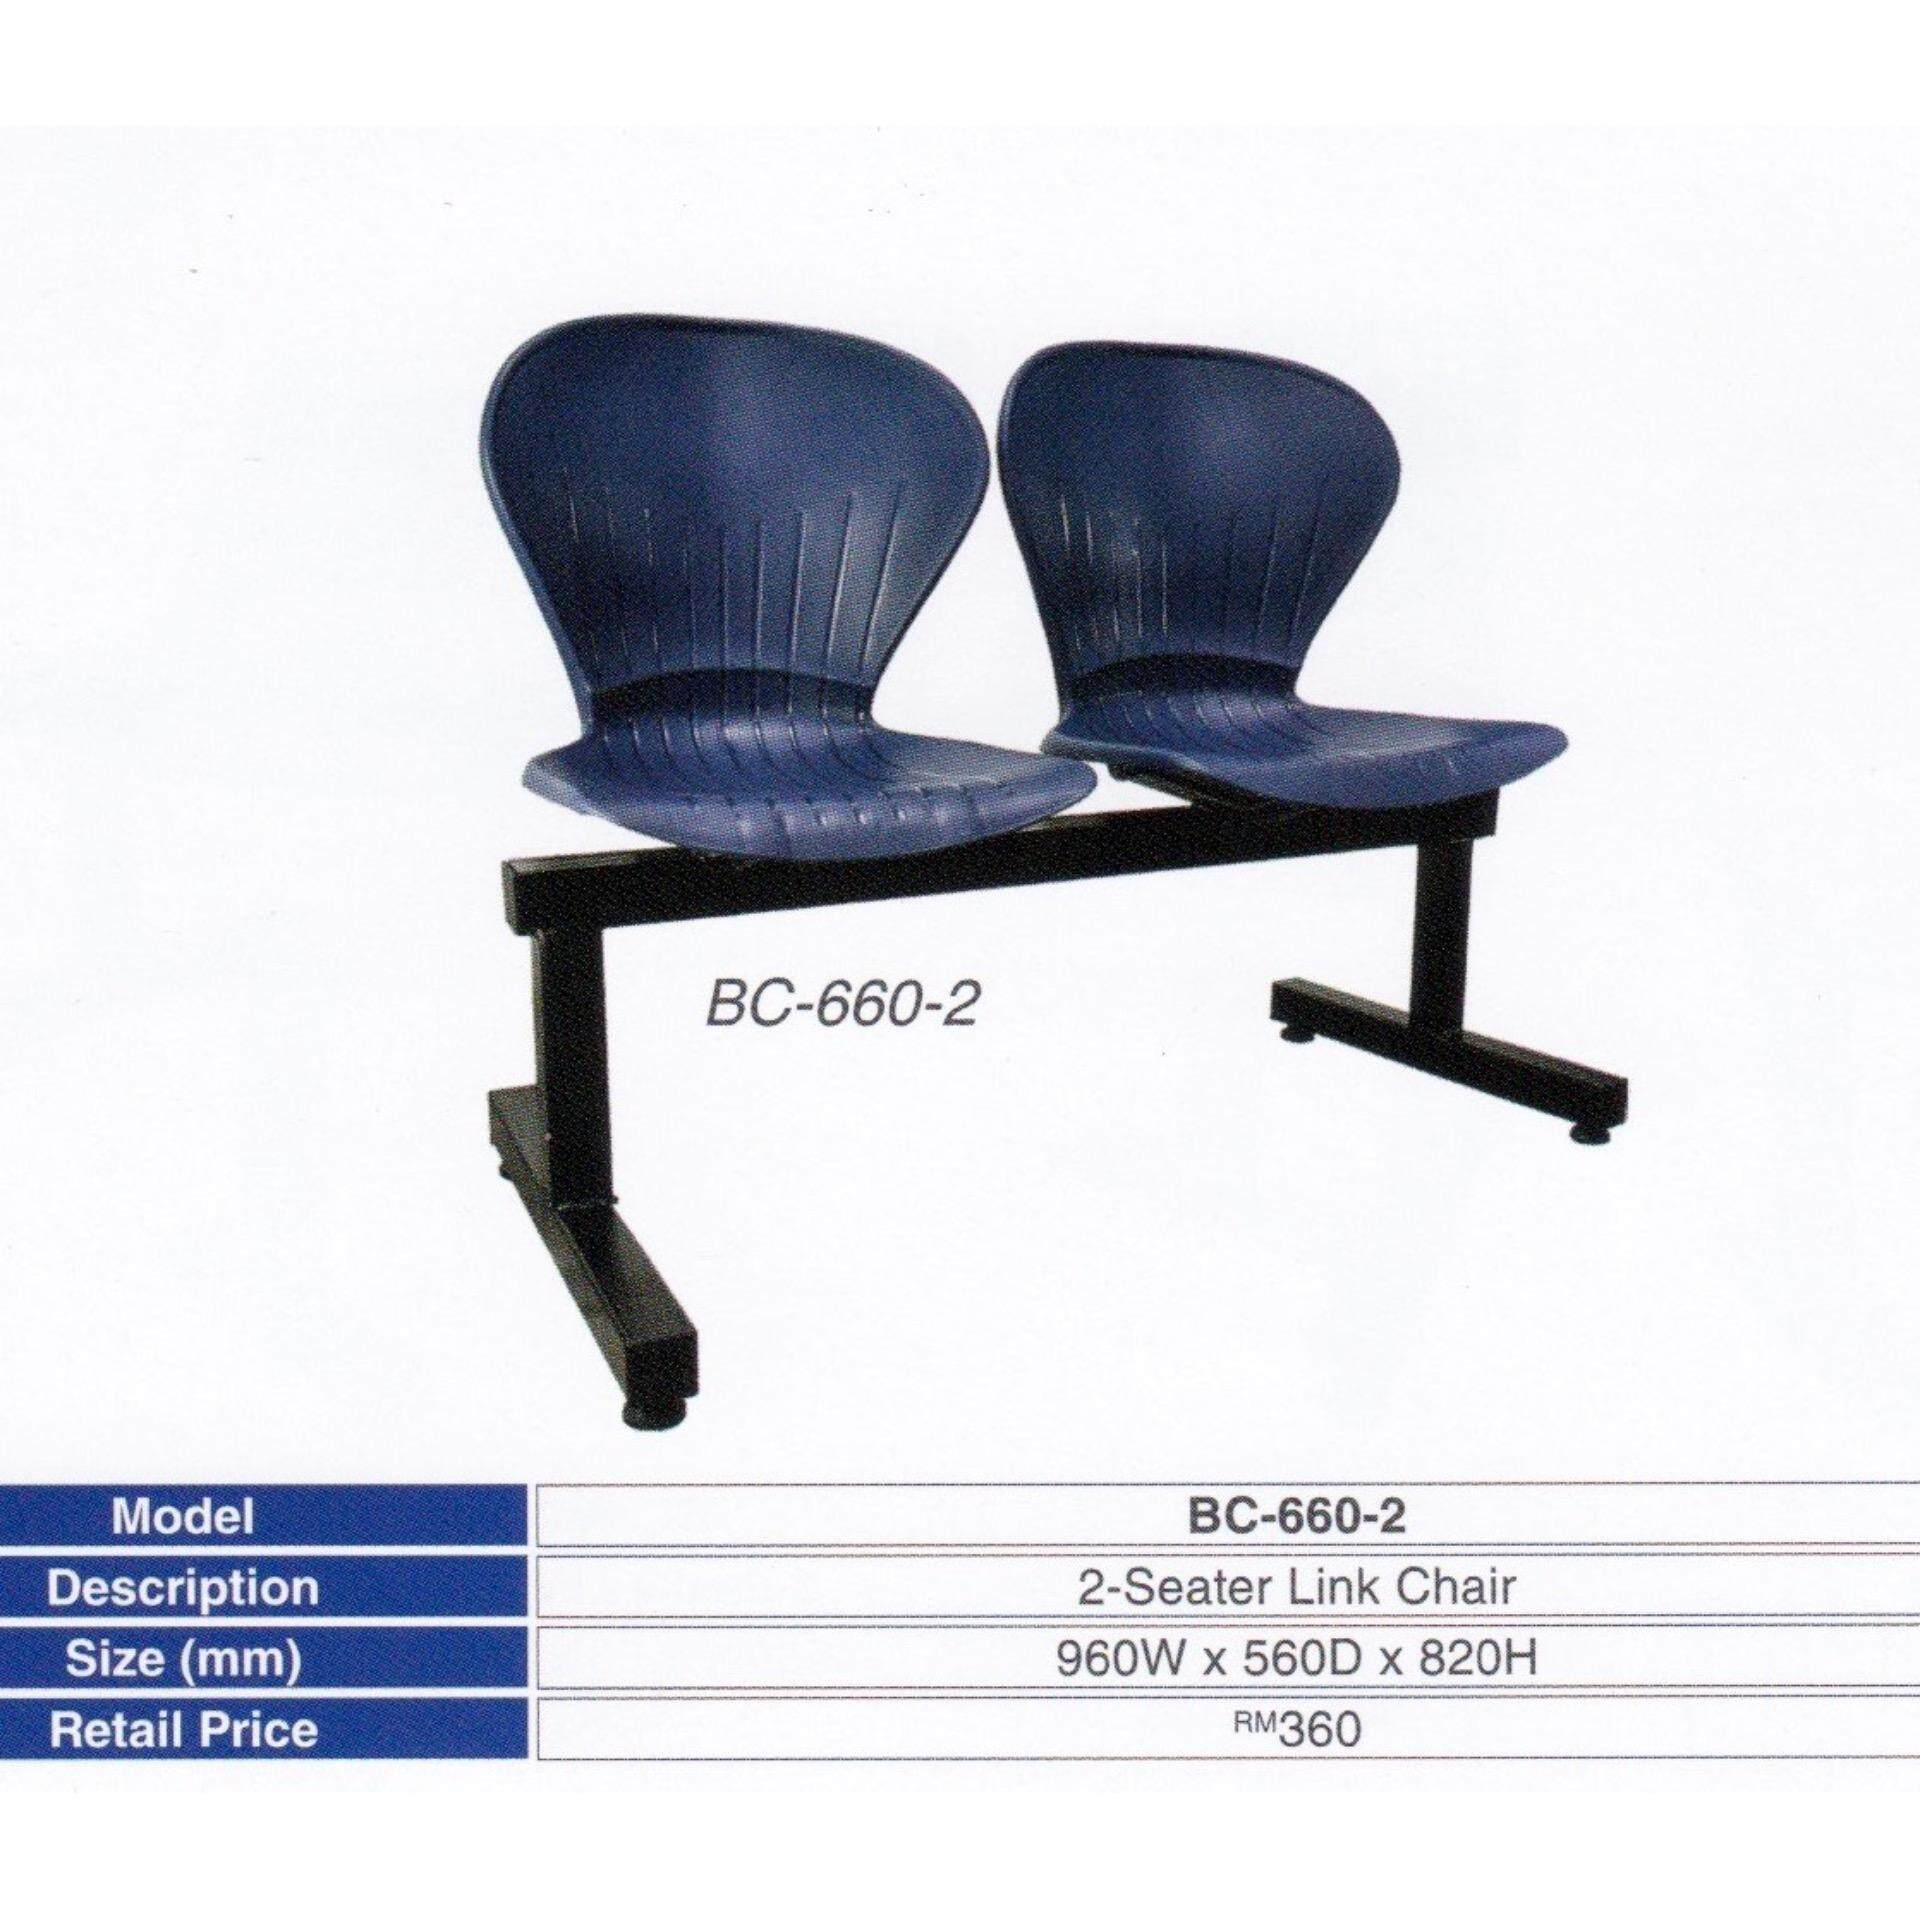 Deco Waiting Area 2-Seater Link Chair (Blue Color) L960MM X D560MM X H820MM Pre-Order 2 Weeks